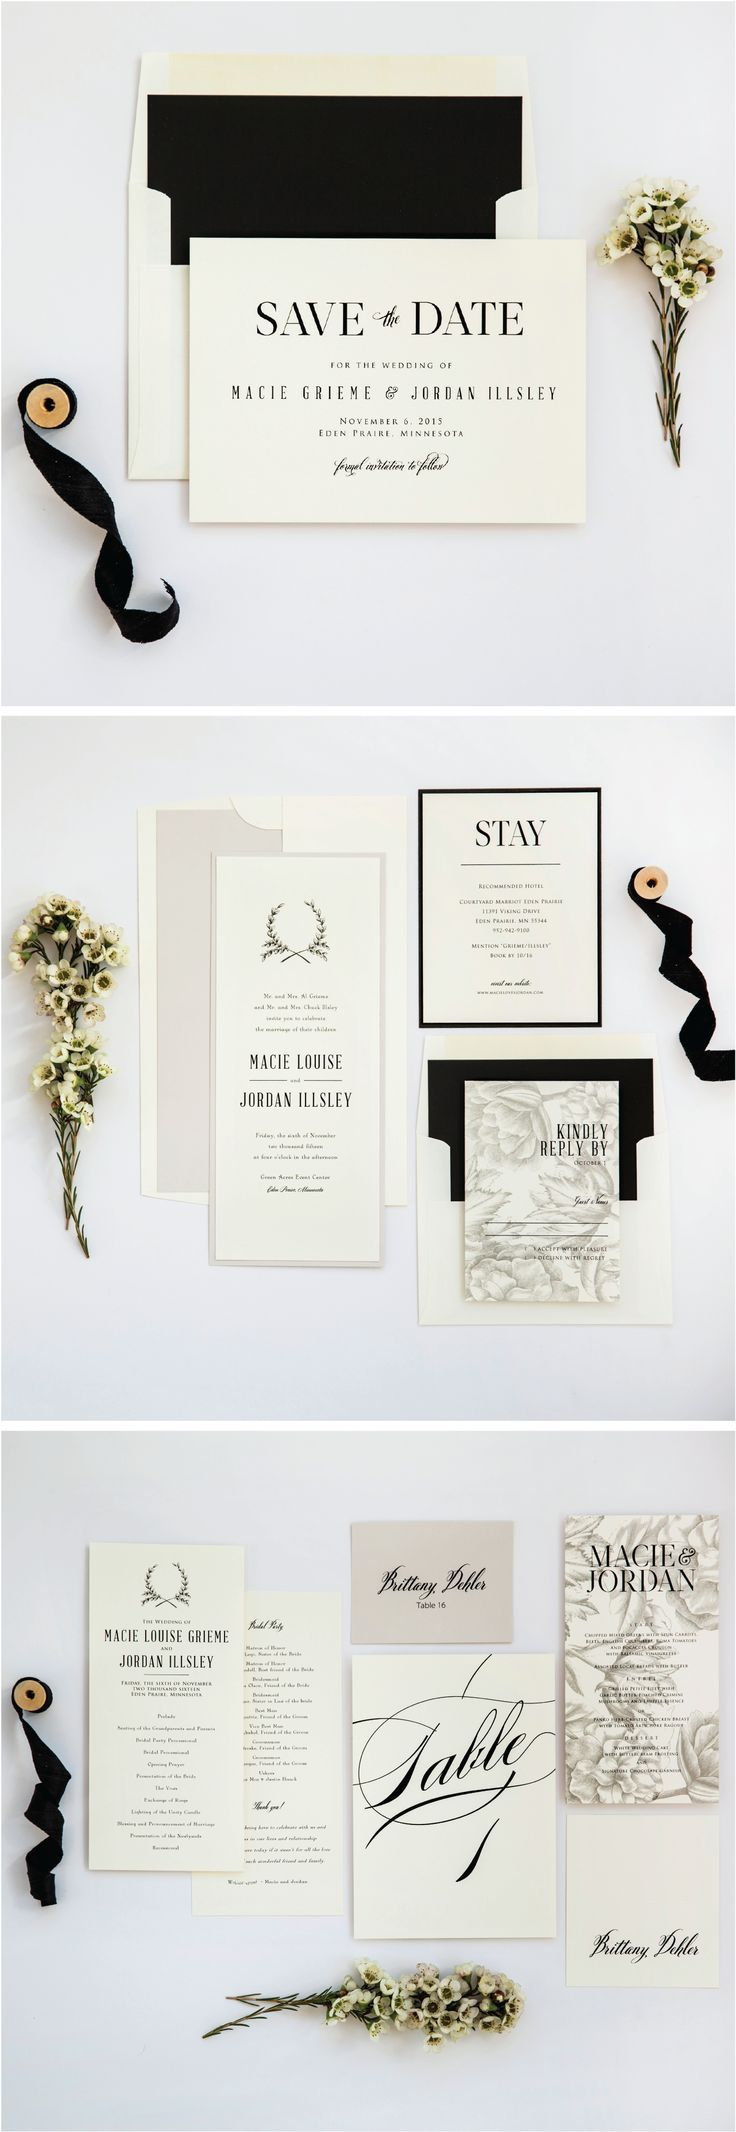 Ivory, Stone & Black Neutral Rustic Wedding Invitation Suite